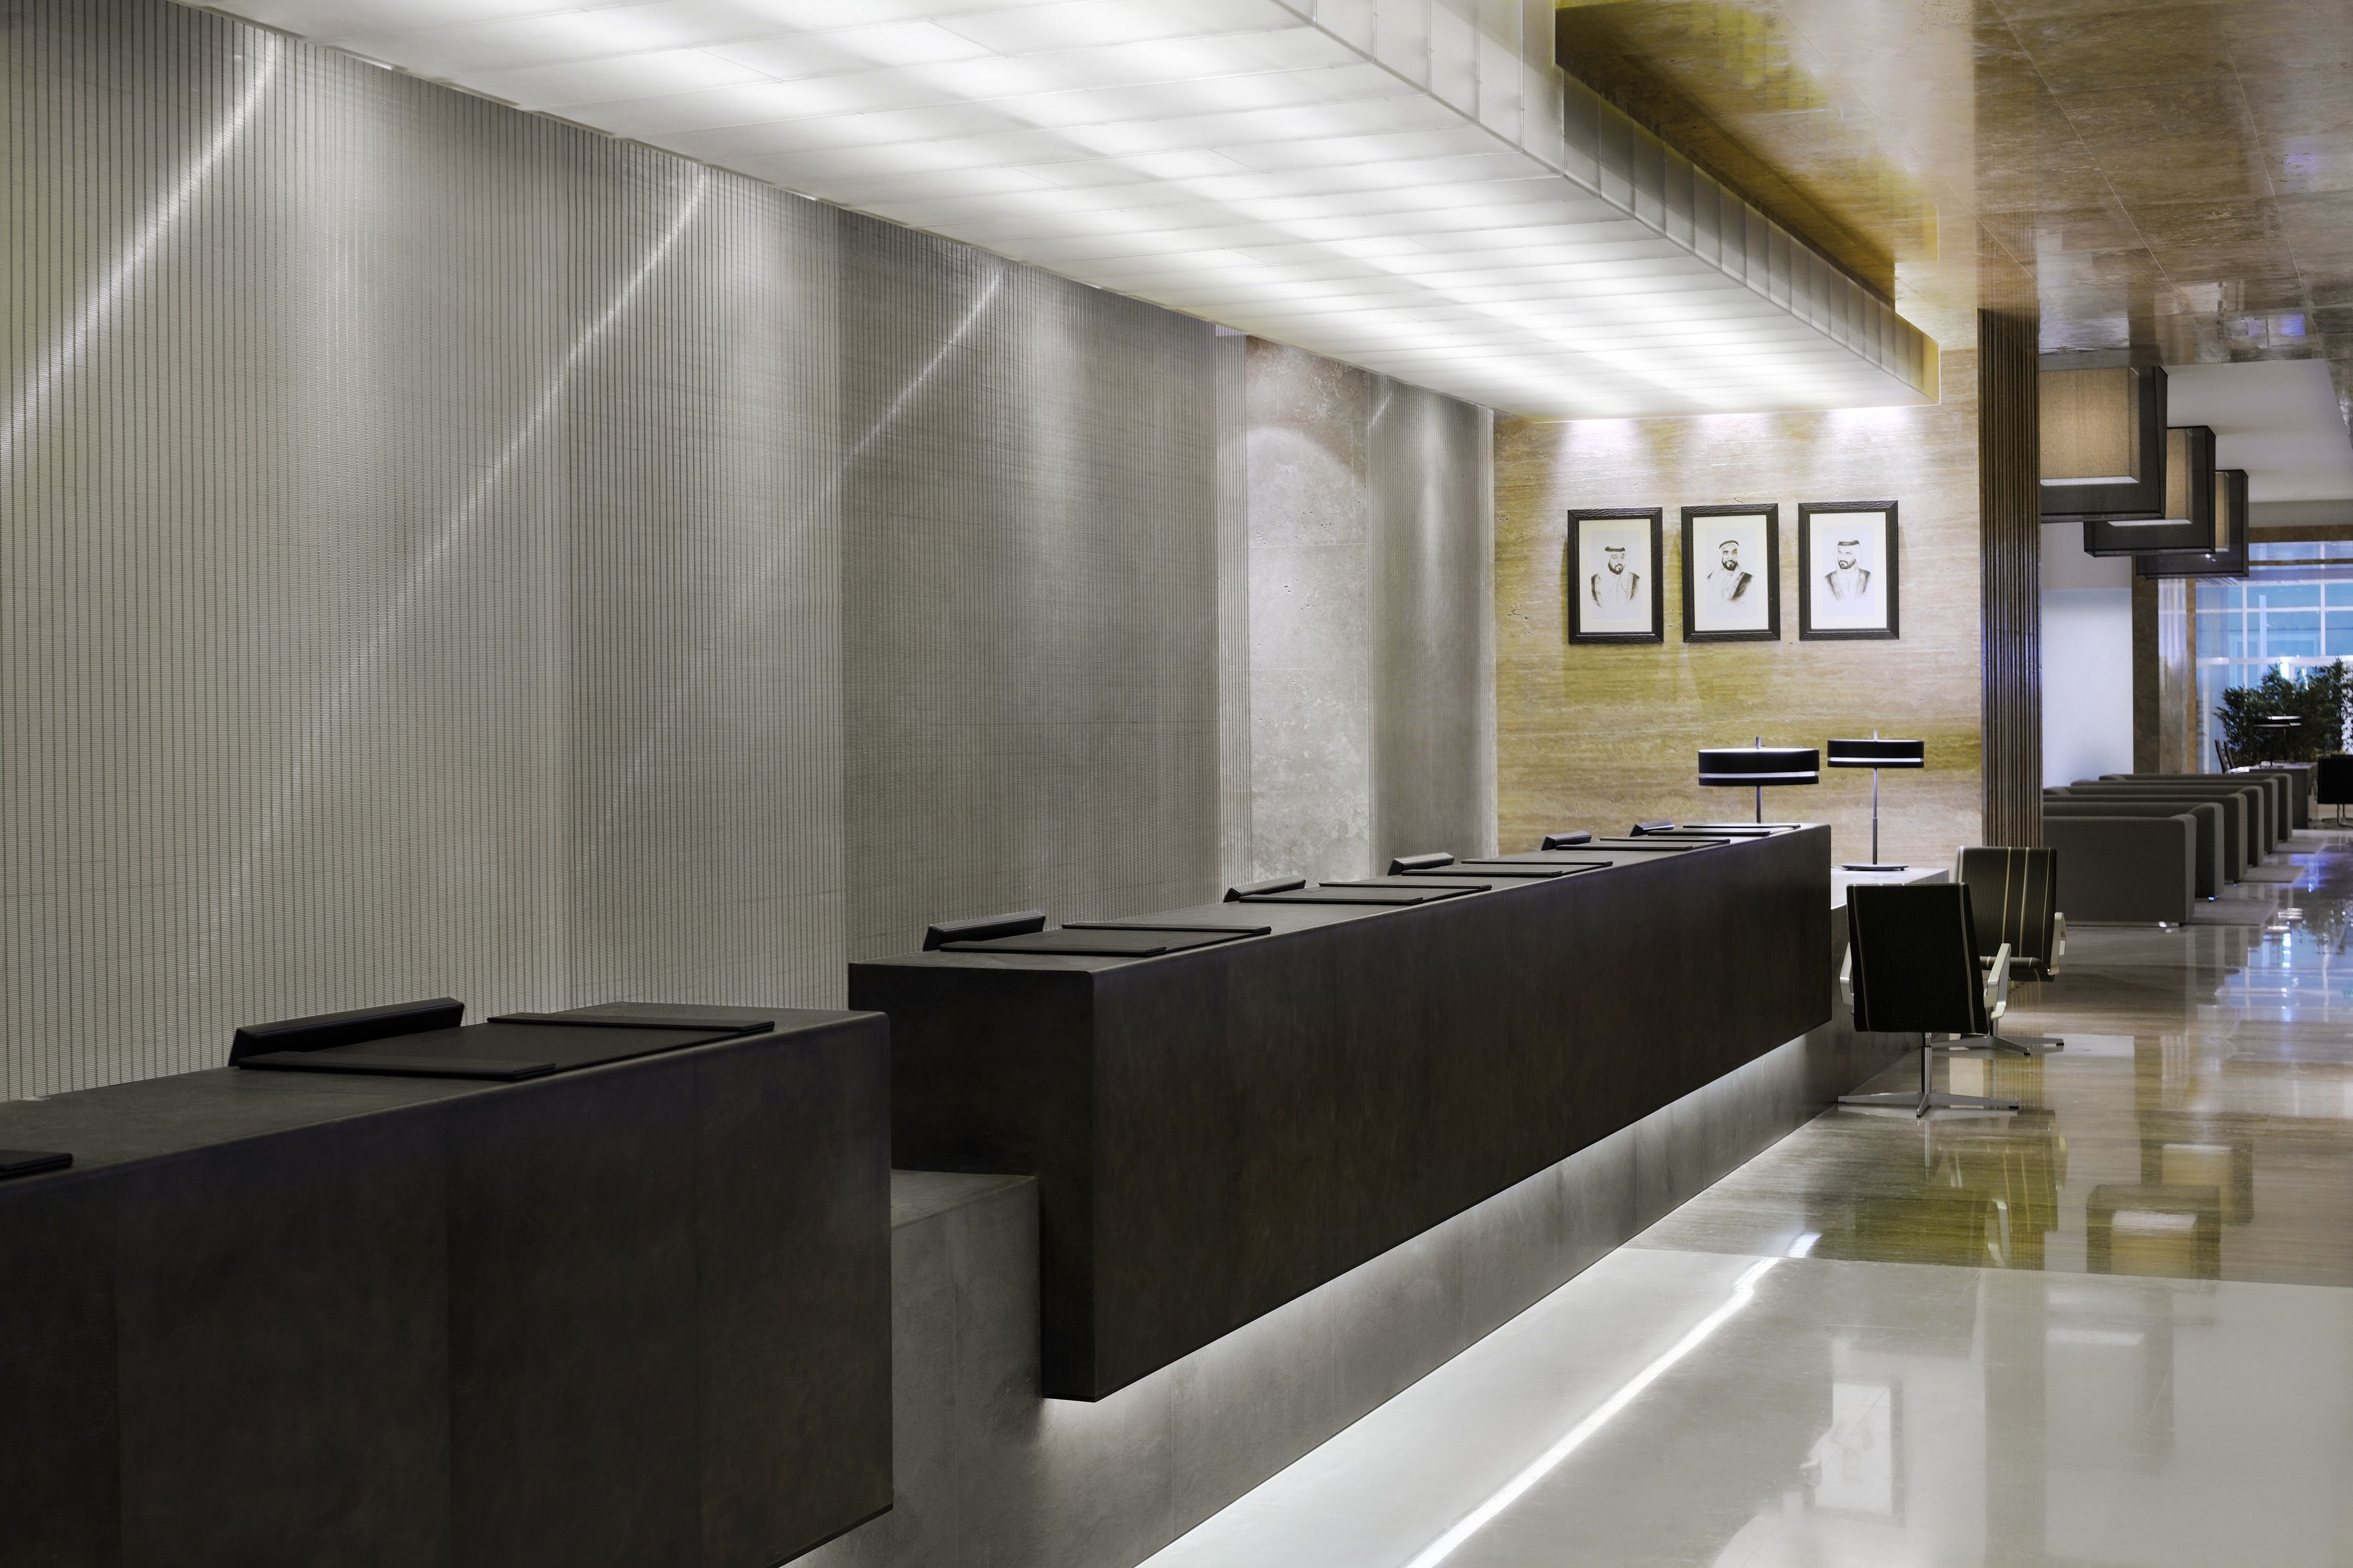 hotel reception counter - Hotel Reception Desk Design